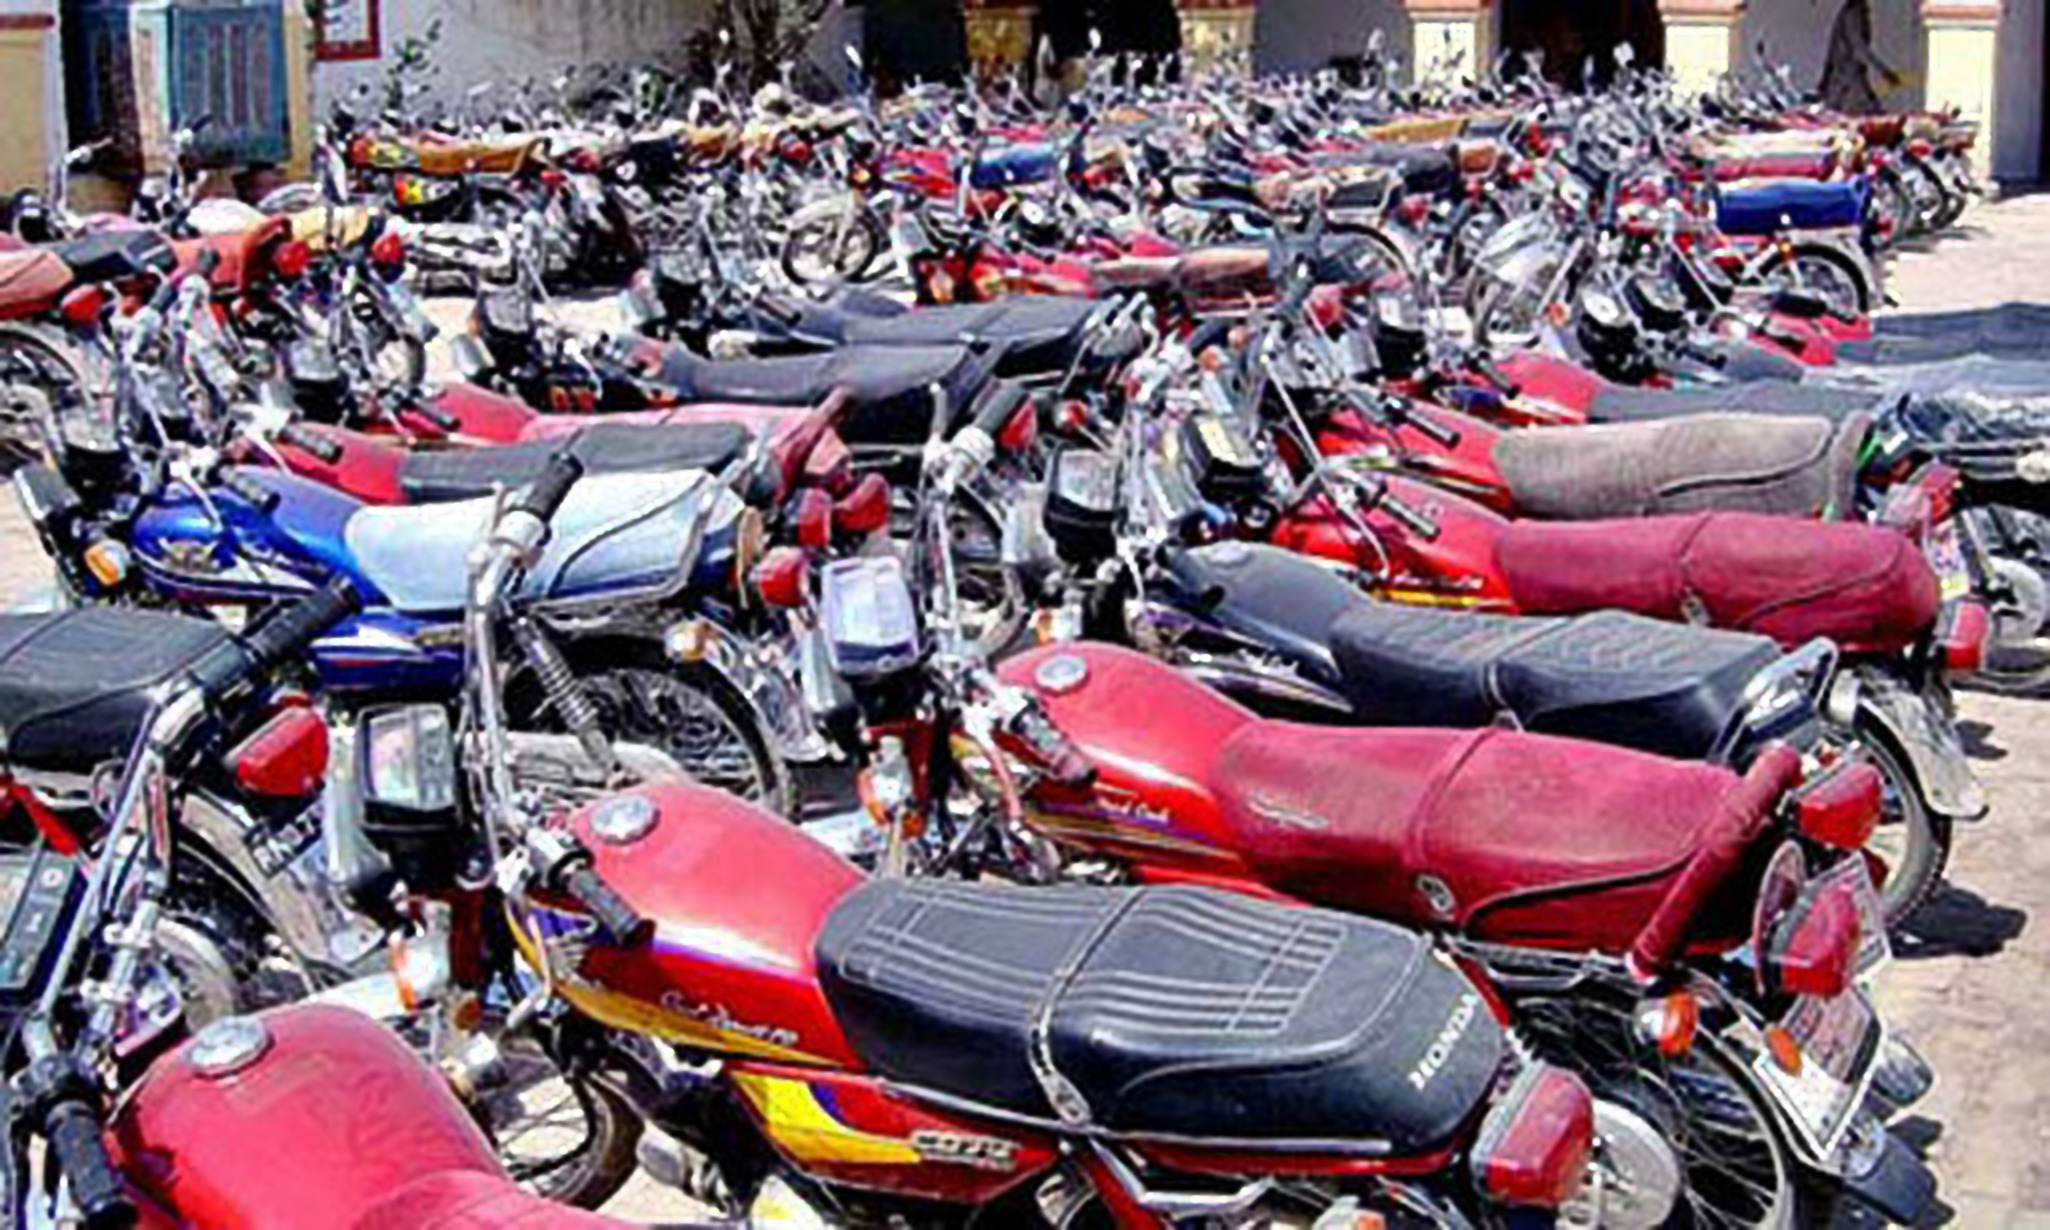 •Impounded motorcycles